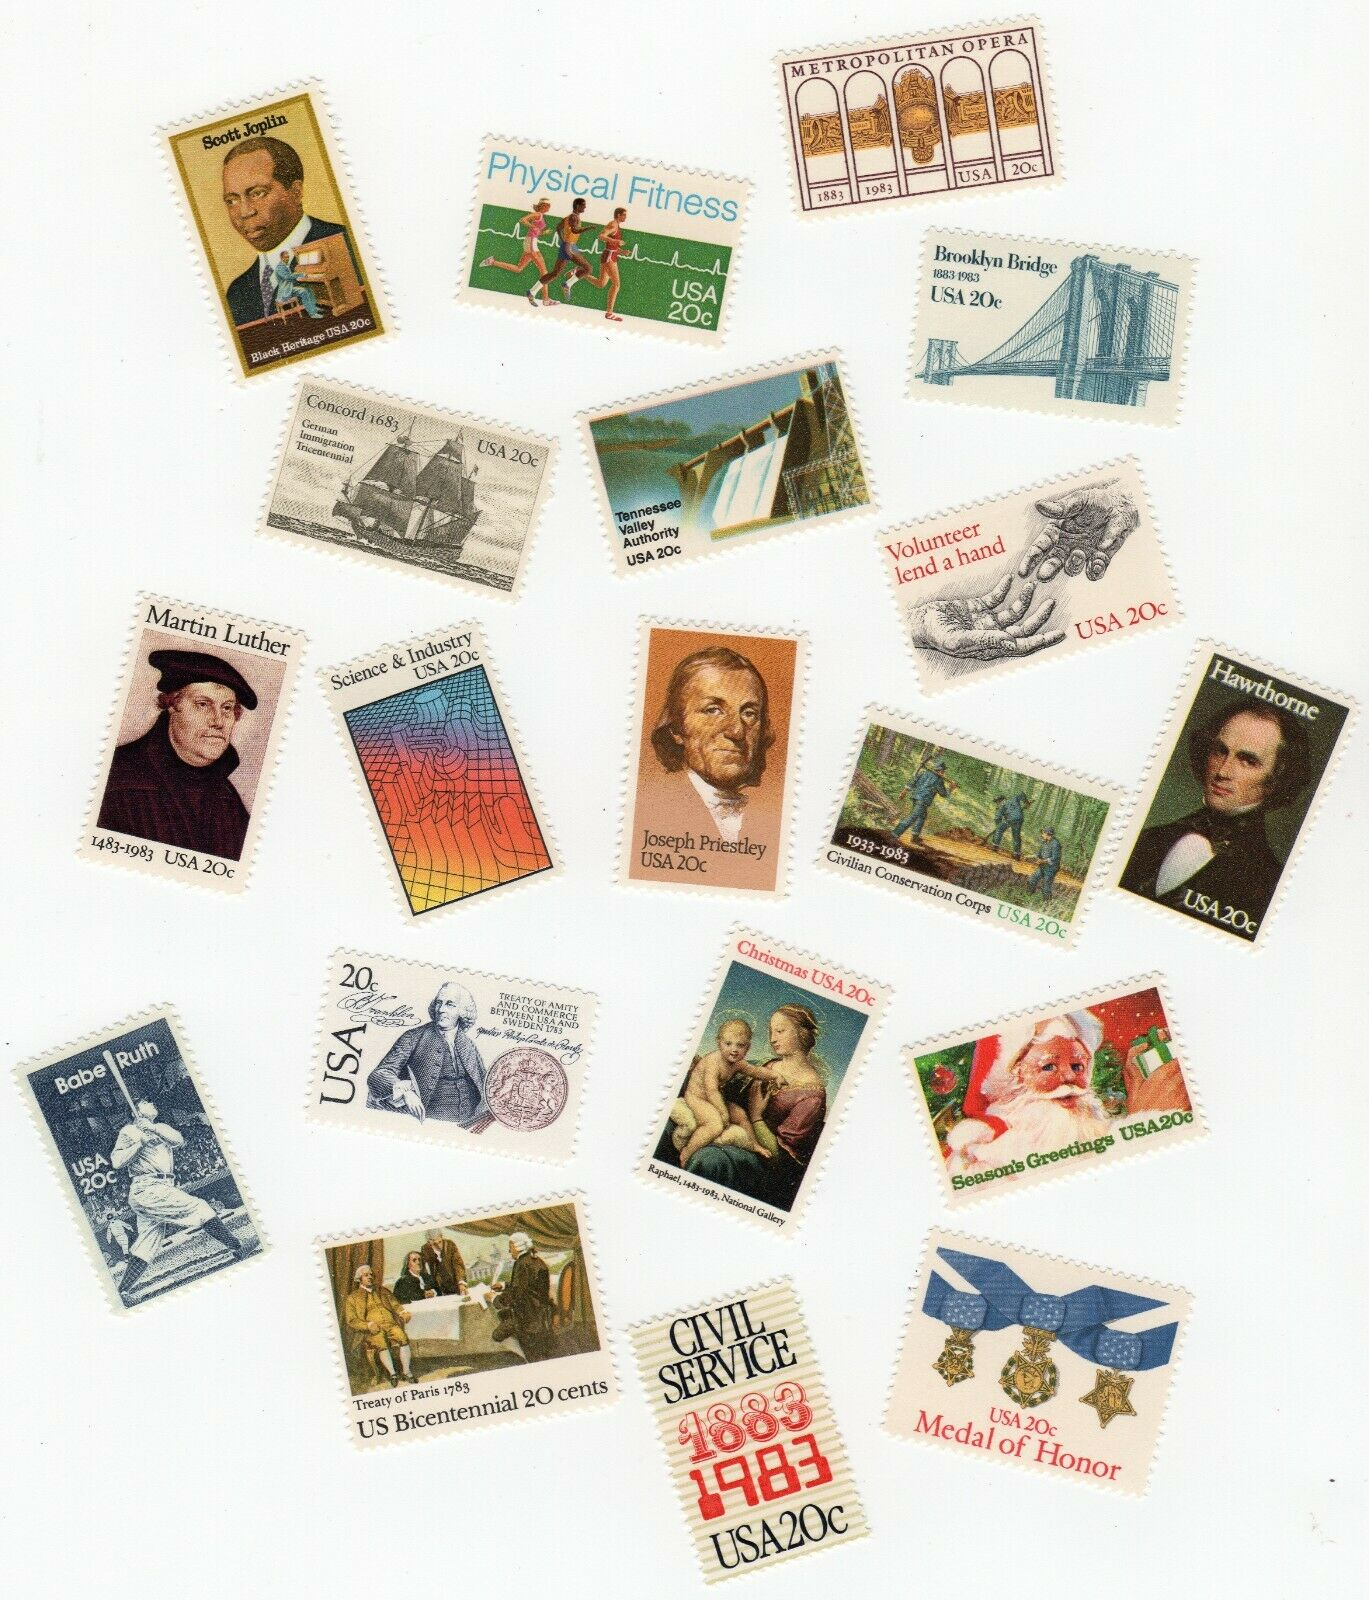 Lot Of 19 US Postage Stamps 1983 MNH 2031 2040 2041 2042 2043 2044 2045 2046... - $5.50